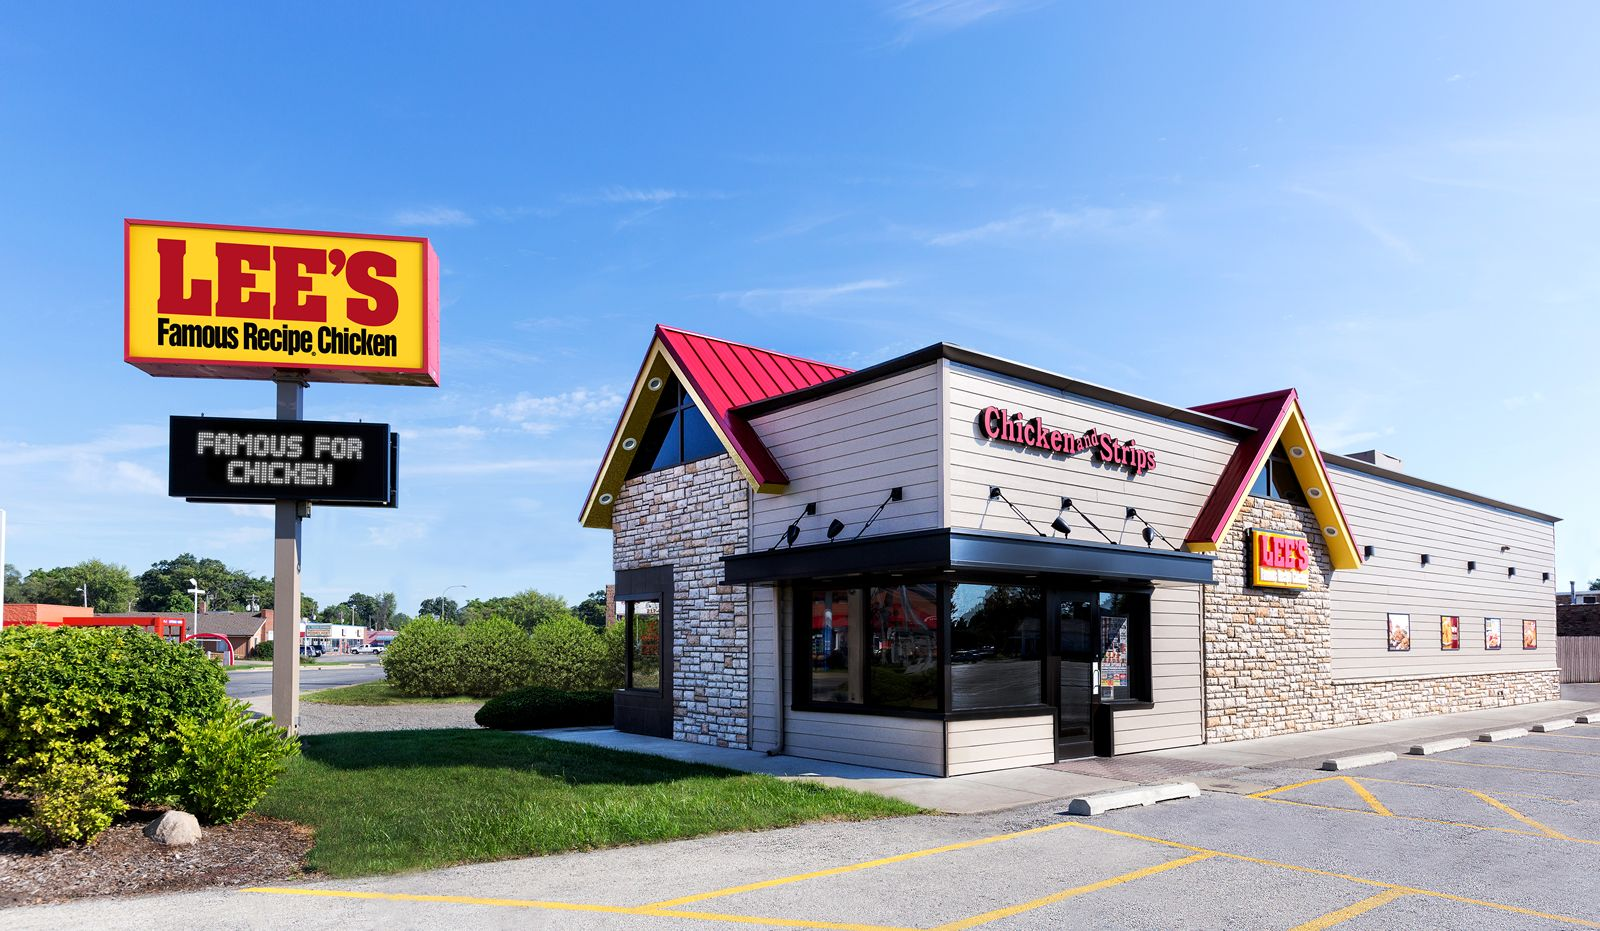 Famous Recipe Group, LLC, Plans for Growth Through Structured Sale of the Lee's Famous Recipe Chicken Brand to Artemis Lane Partners